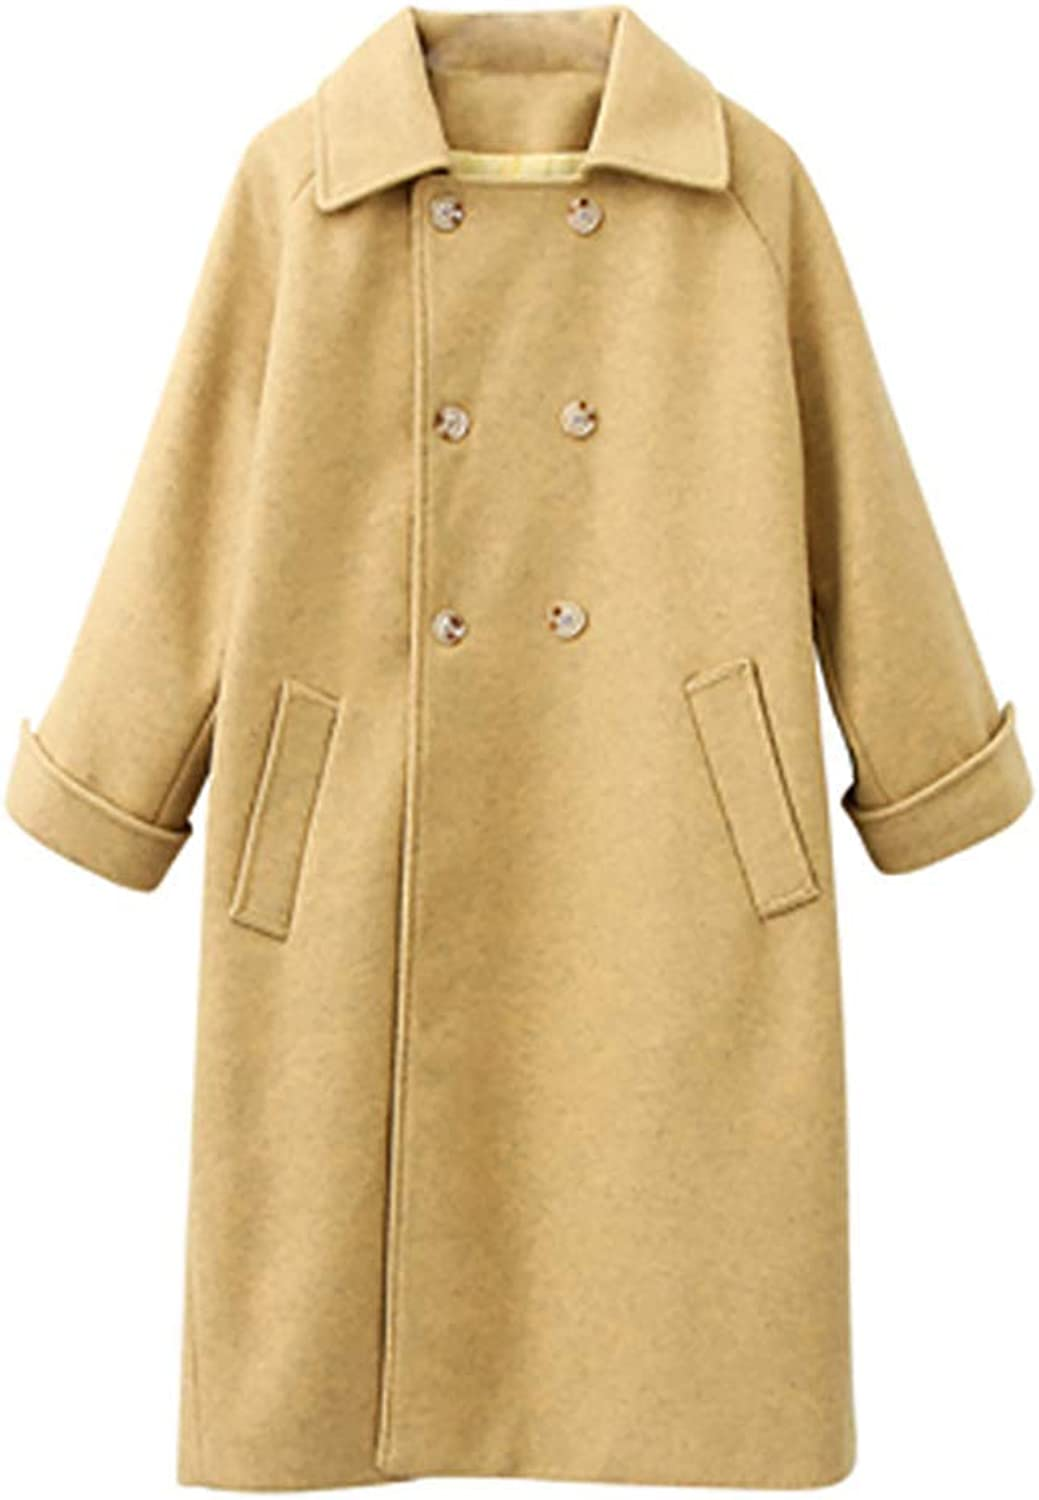 Women's Trench Coat Winter Jacket Belt